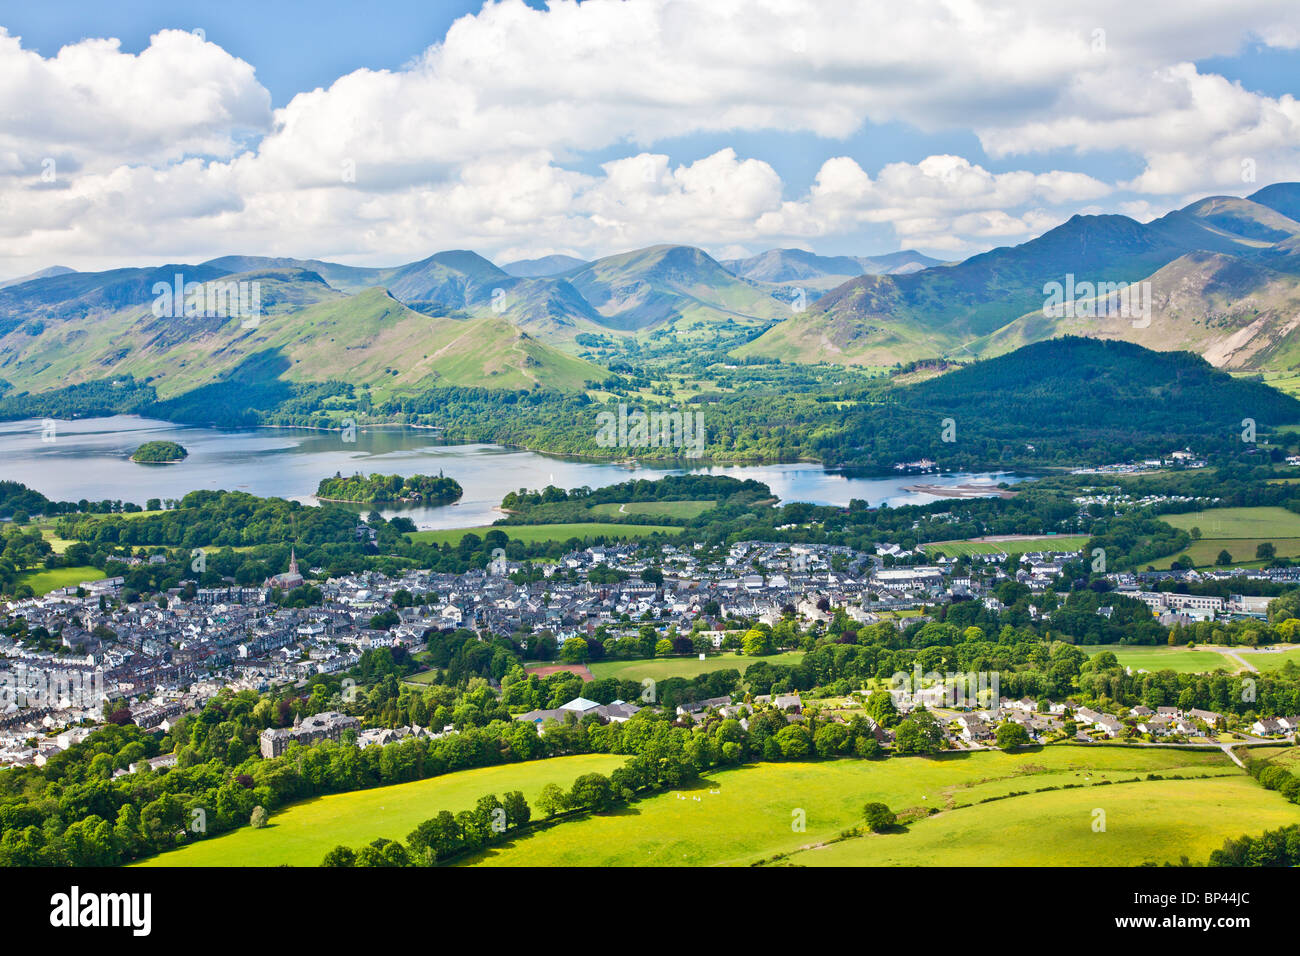 View from Latrigg over Keswick, Derwent Water and Cat Bells, Lake District, Cumbria, England, UK - Stock Image